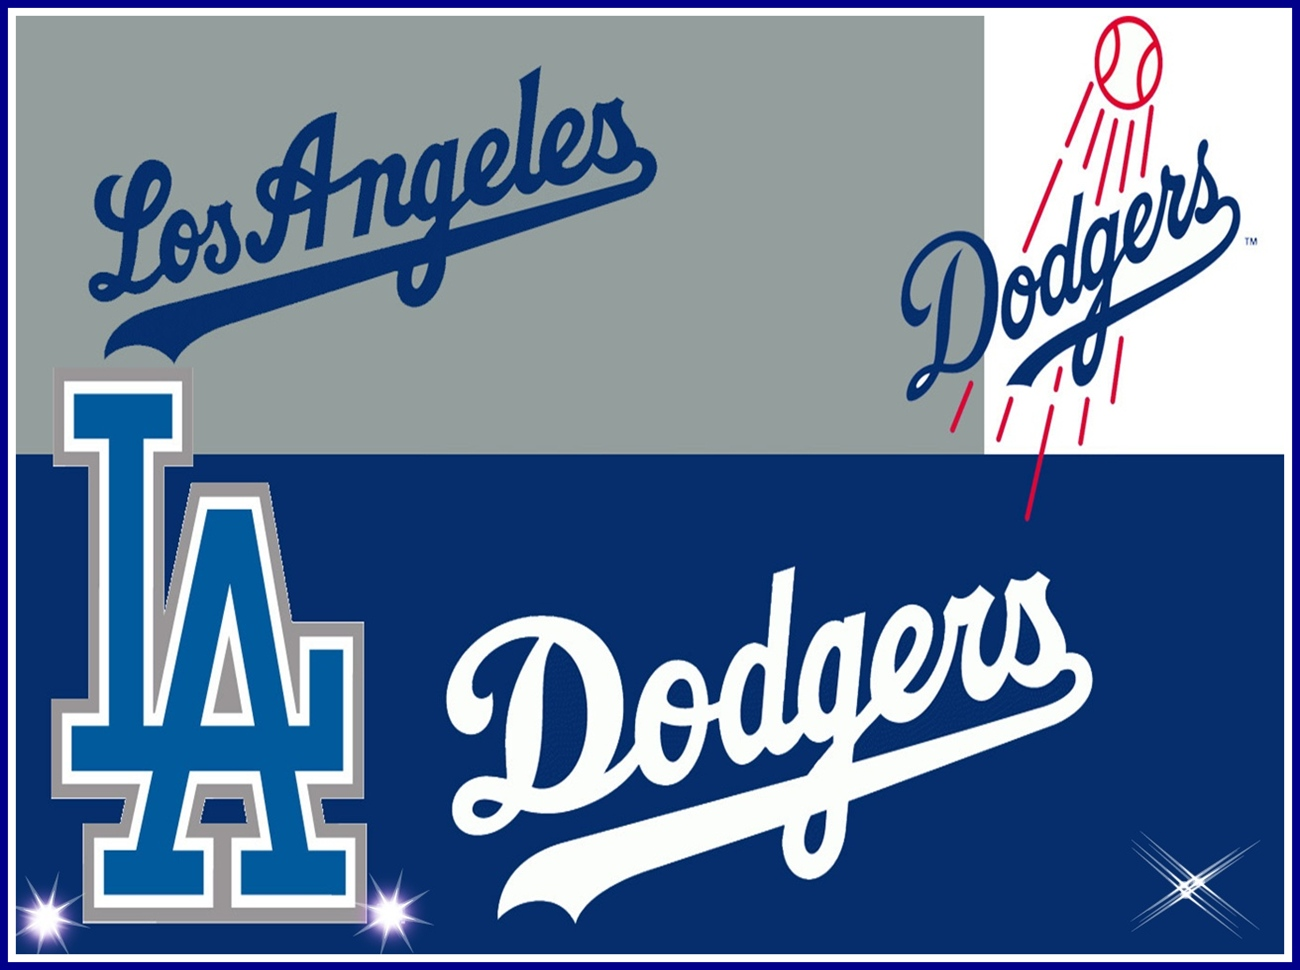 Mlb wallpaper free screen savers los angeles dodgers1300x970g thecheapjerseys Choice Image